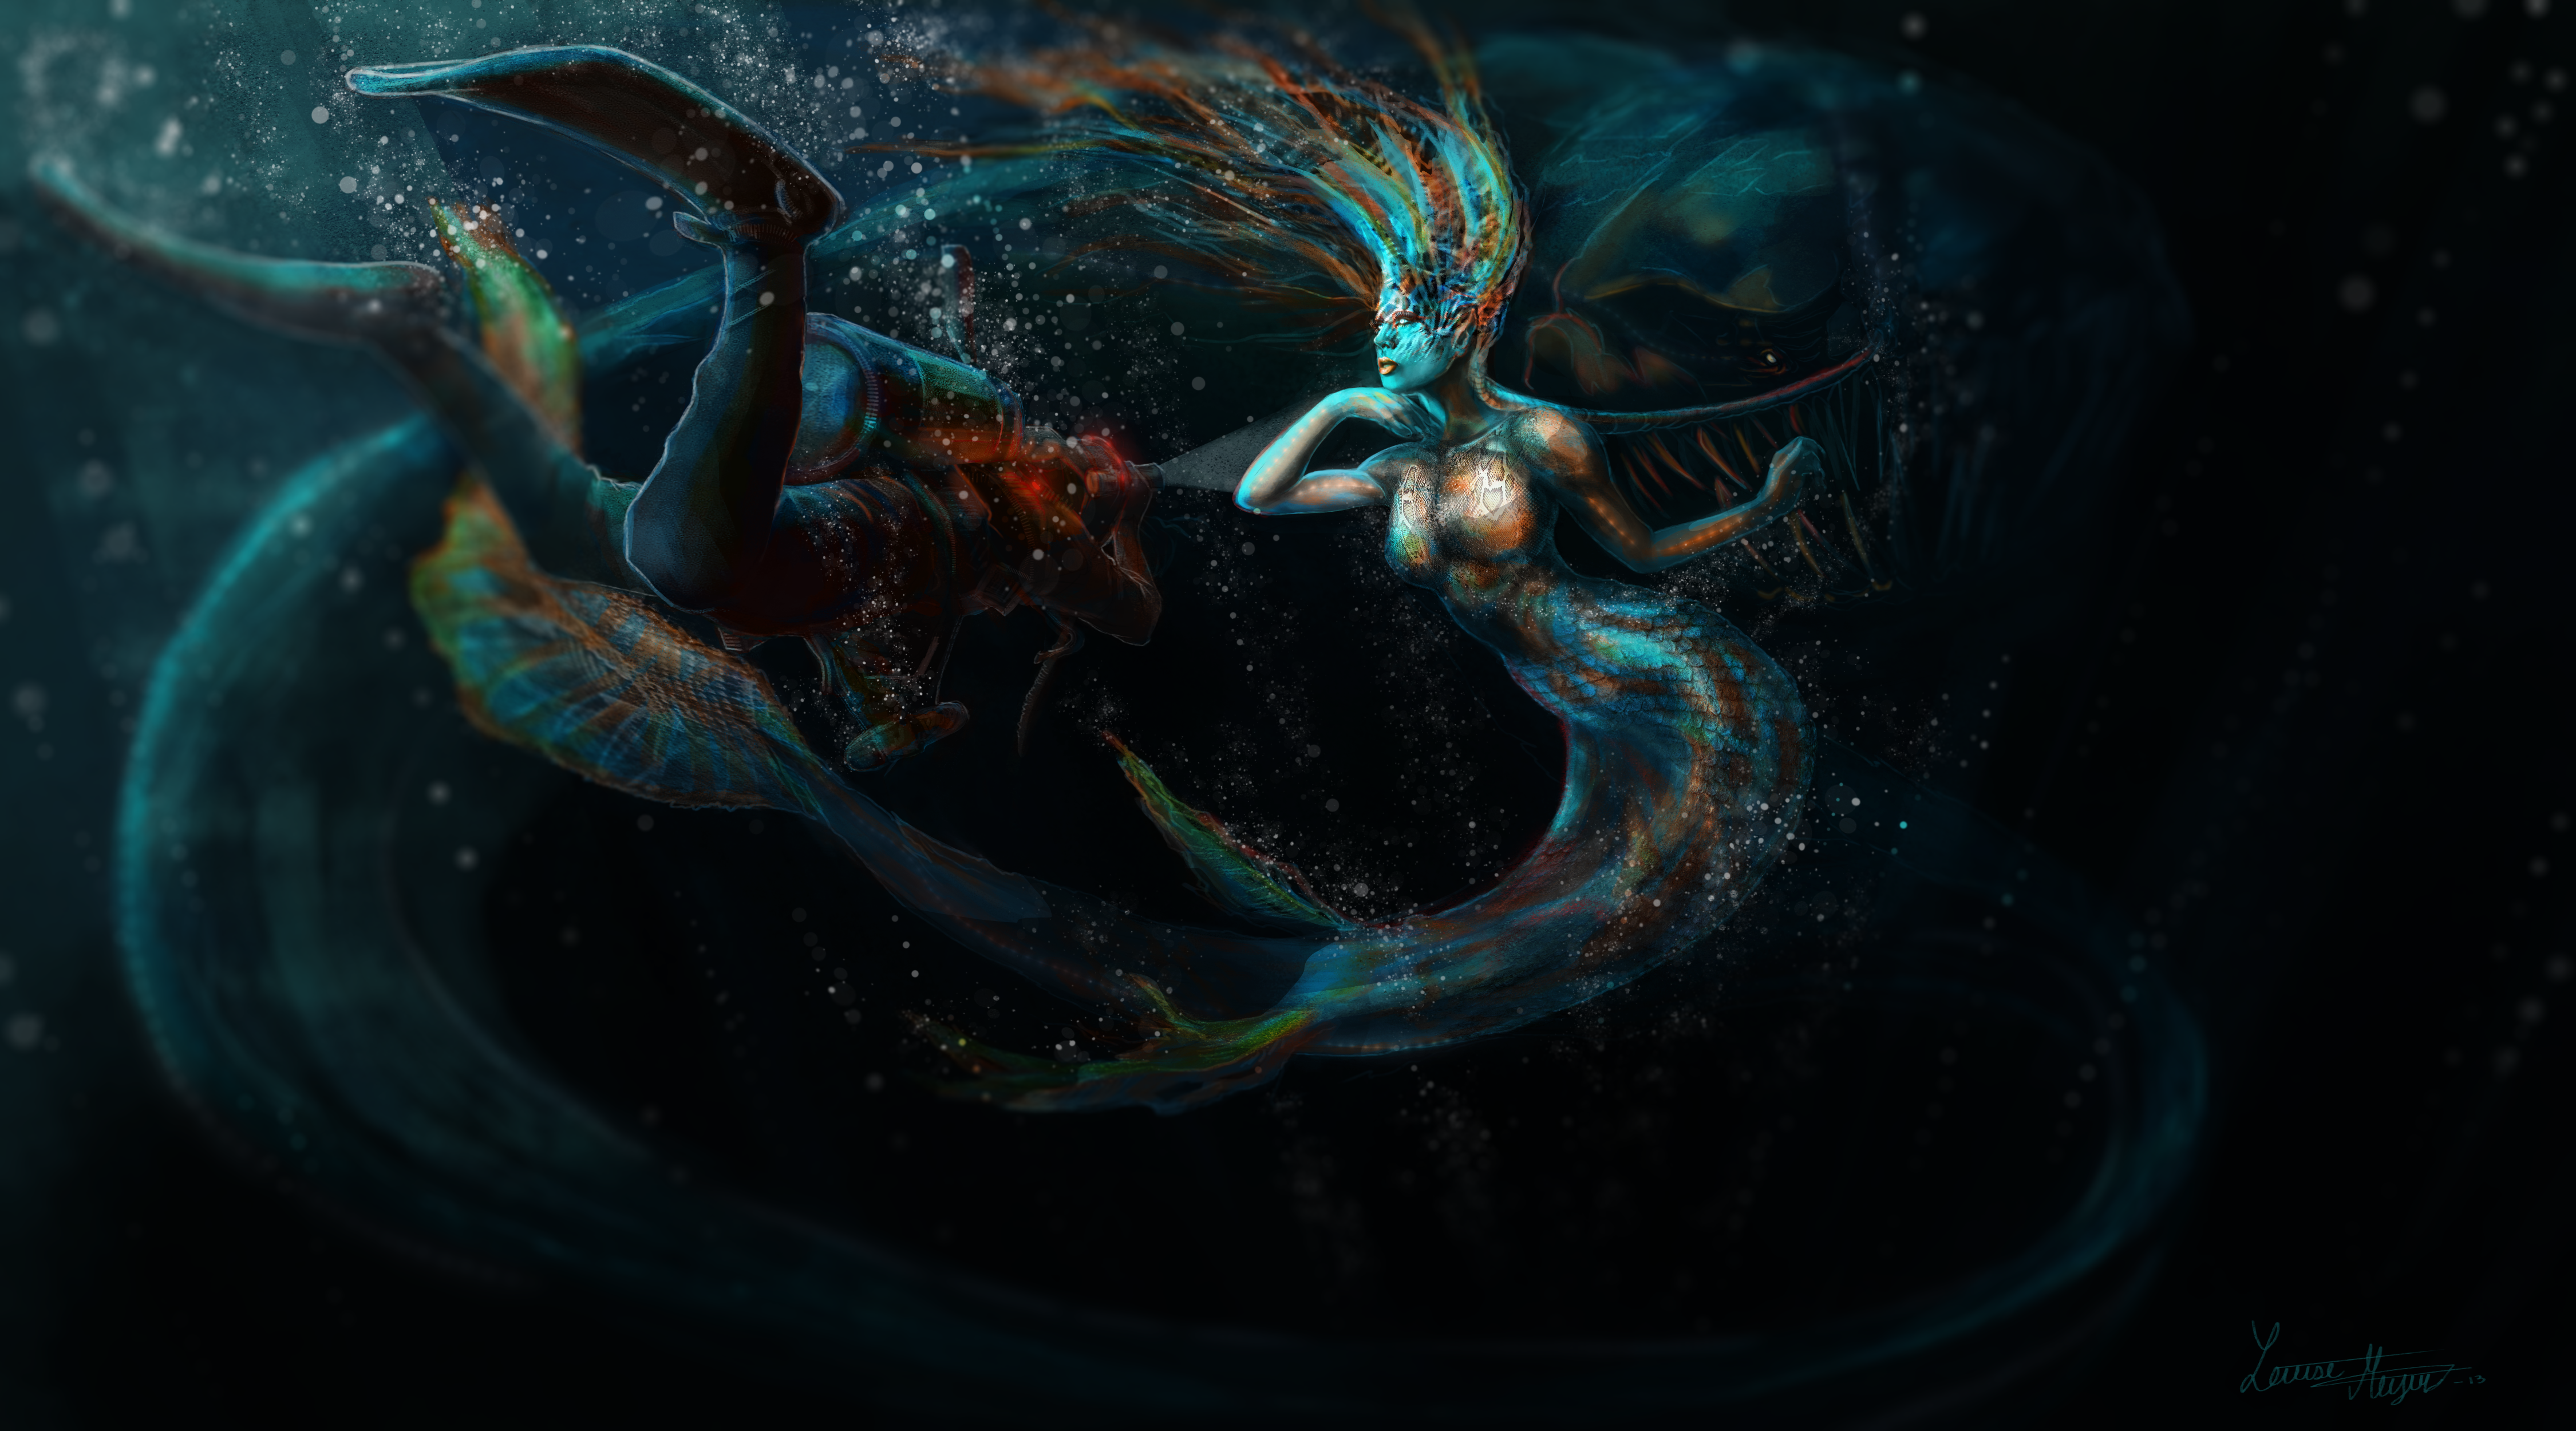 Into the deep 4k ultra hd wallpaper background image - Mermaid wallpaper hd ...